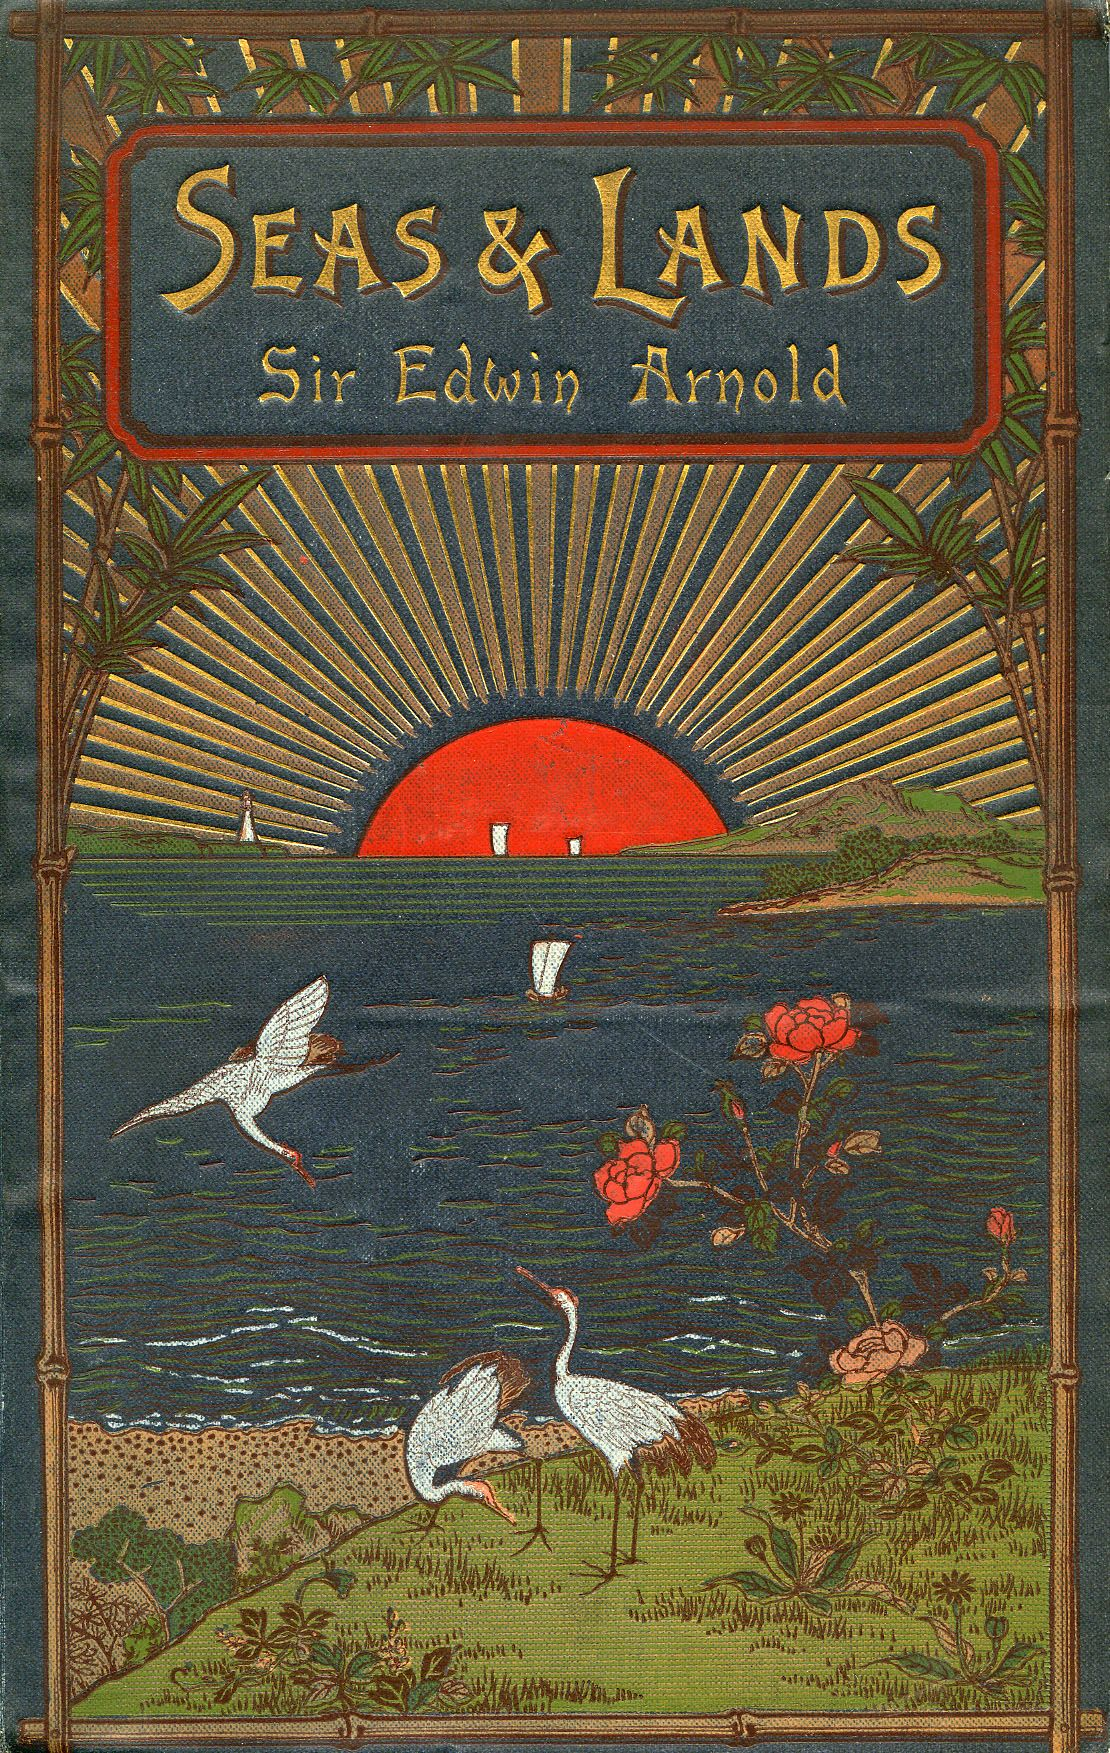 Seas and Lands...Sir Edwin Arnold 1891 | Book cover art ...